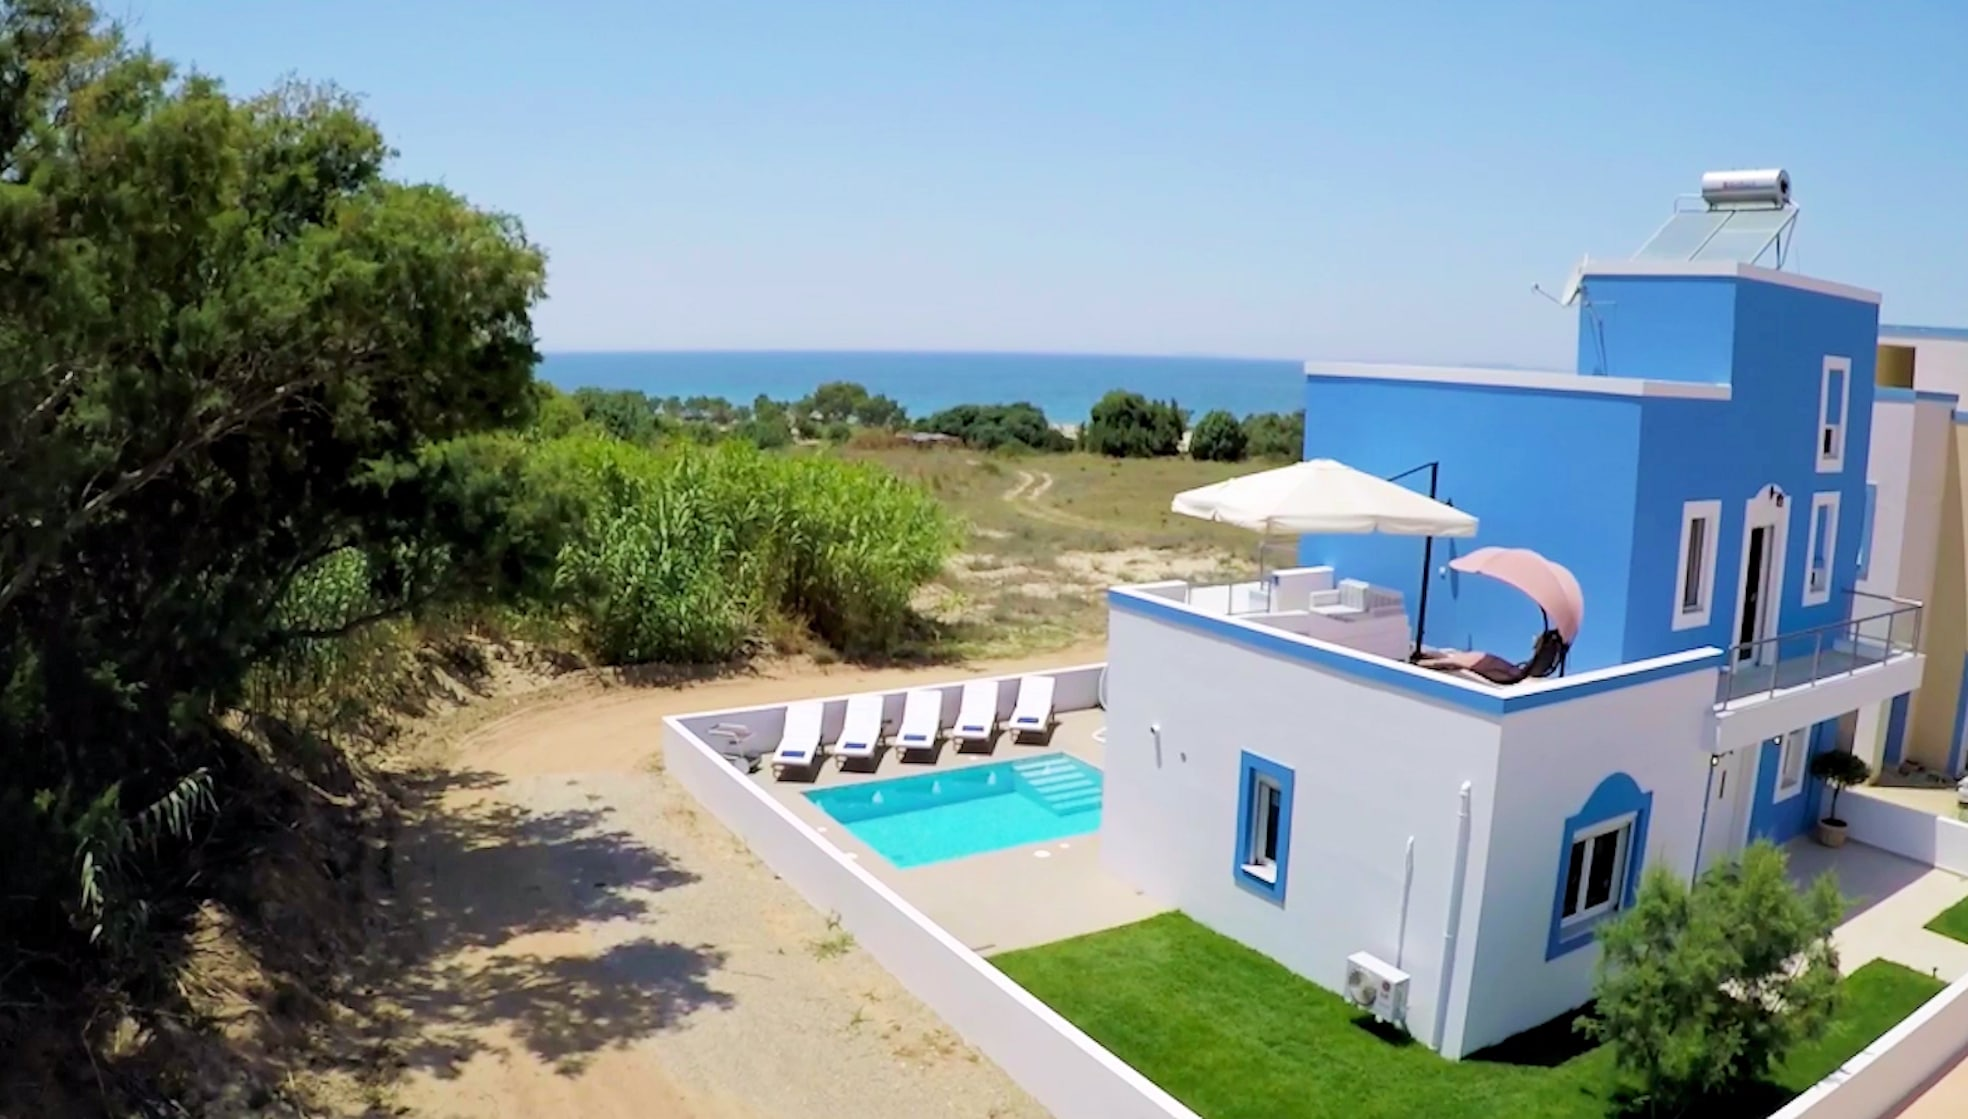 Property Image 1 - Delightful 3 bedroom beachfront villa with private pool